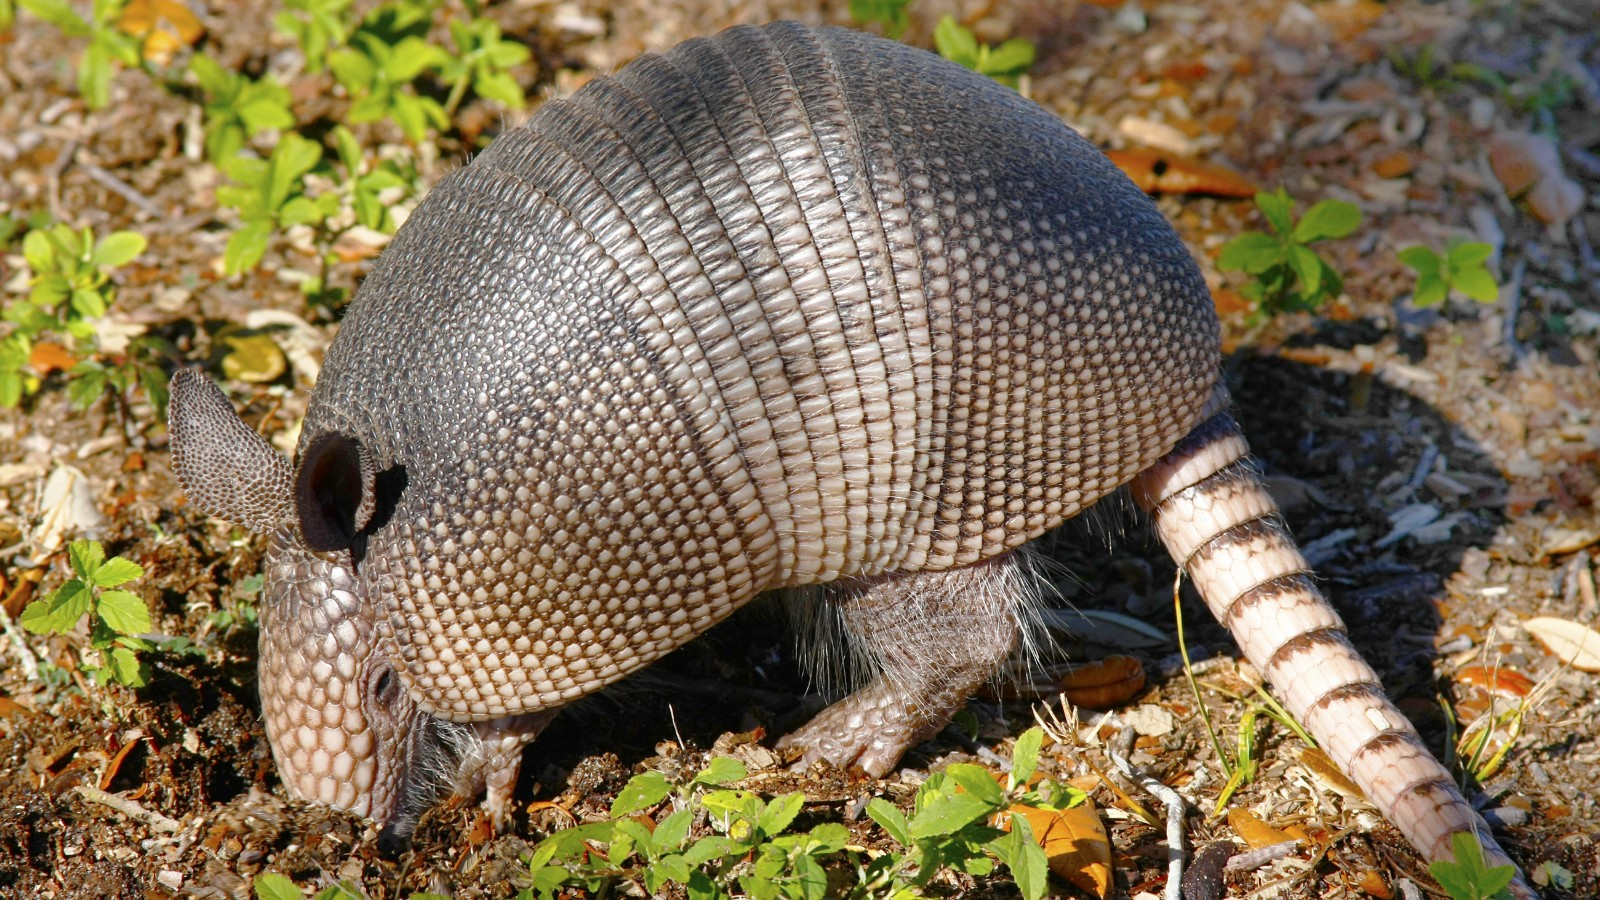 can a bullet ricochet off an armadillo